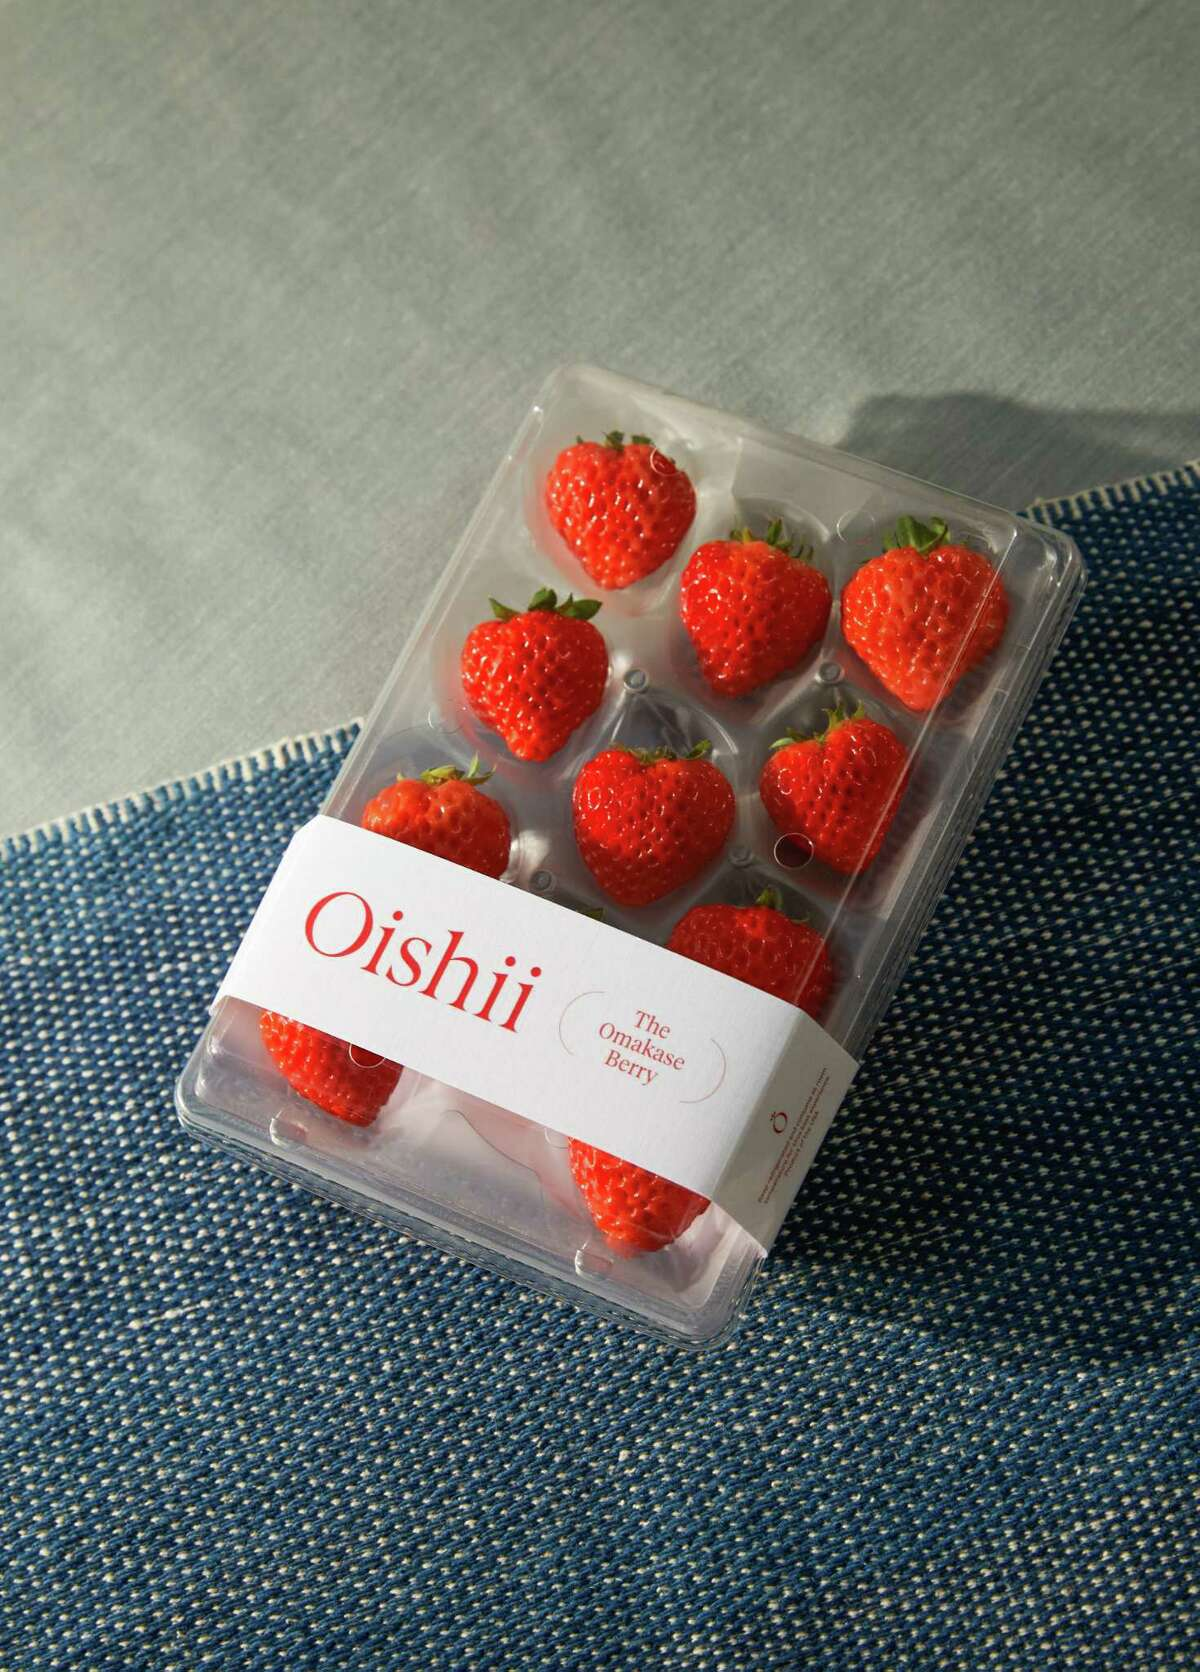 Oishii's Omakase Berries cost $50 for a package of eight.